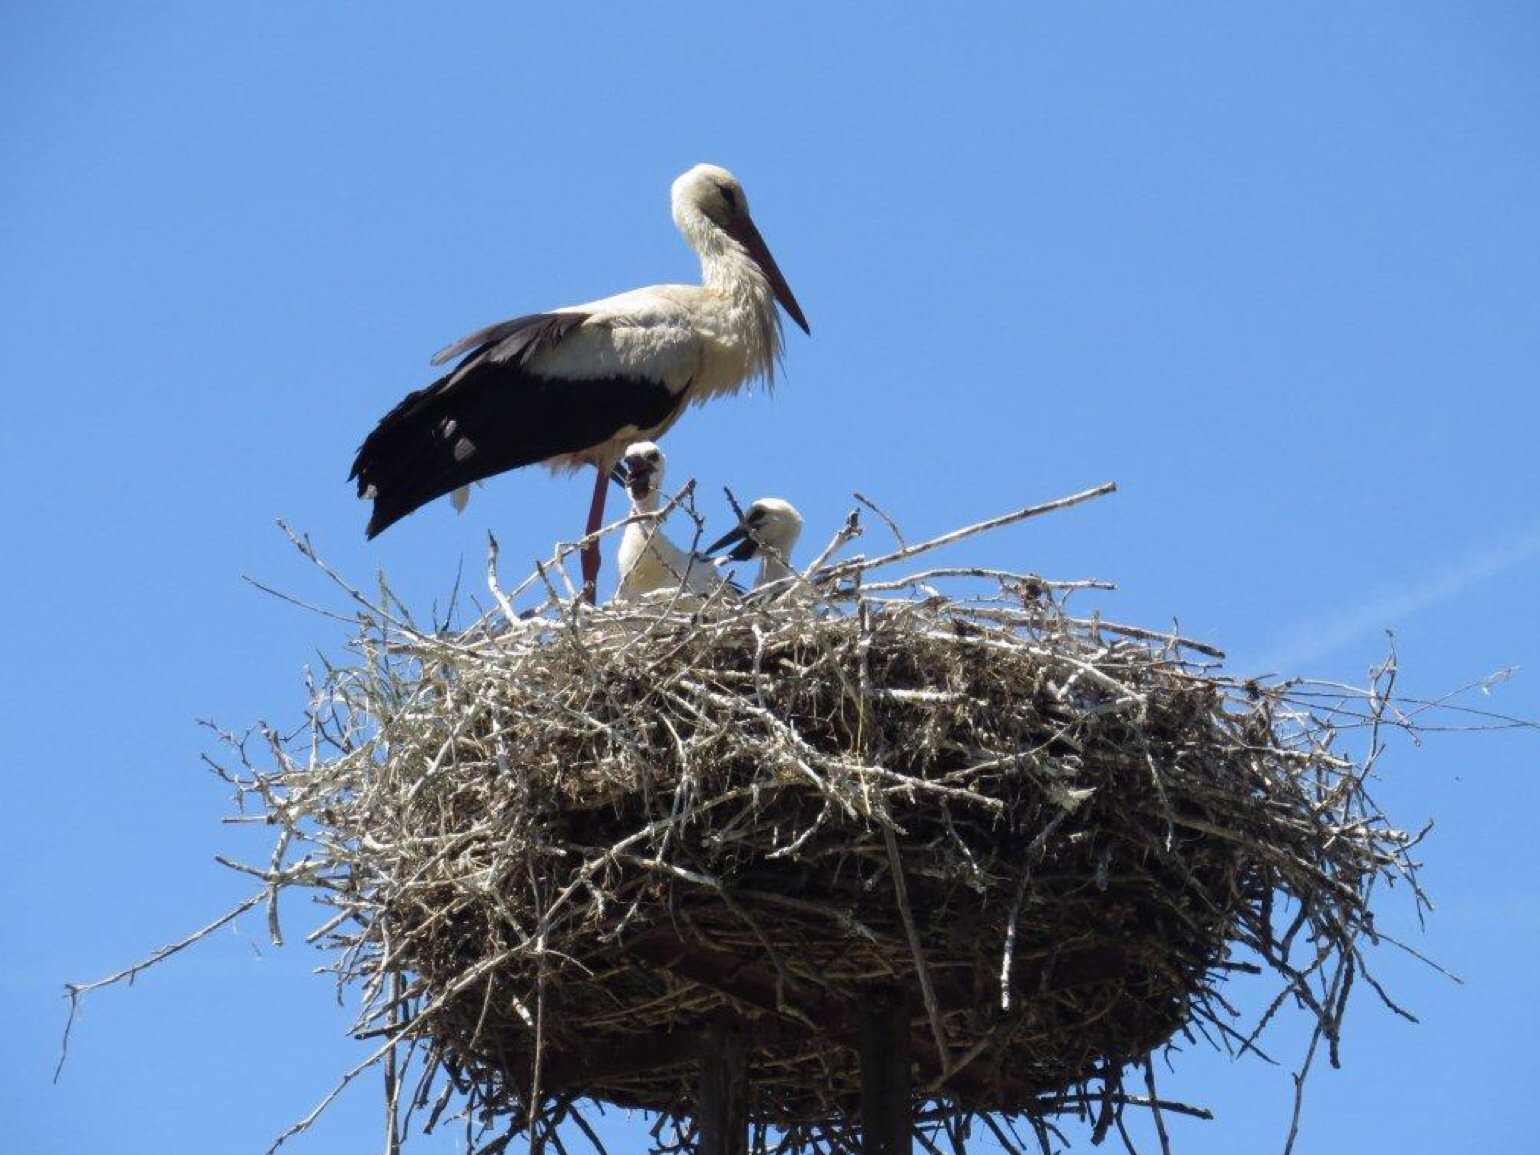 This white stork in Hungary delivered its own babies.